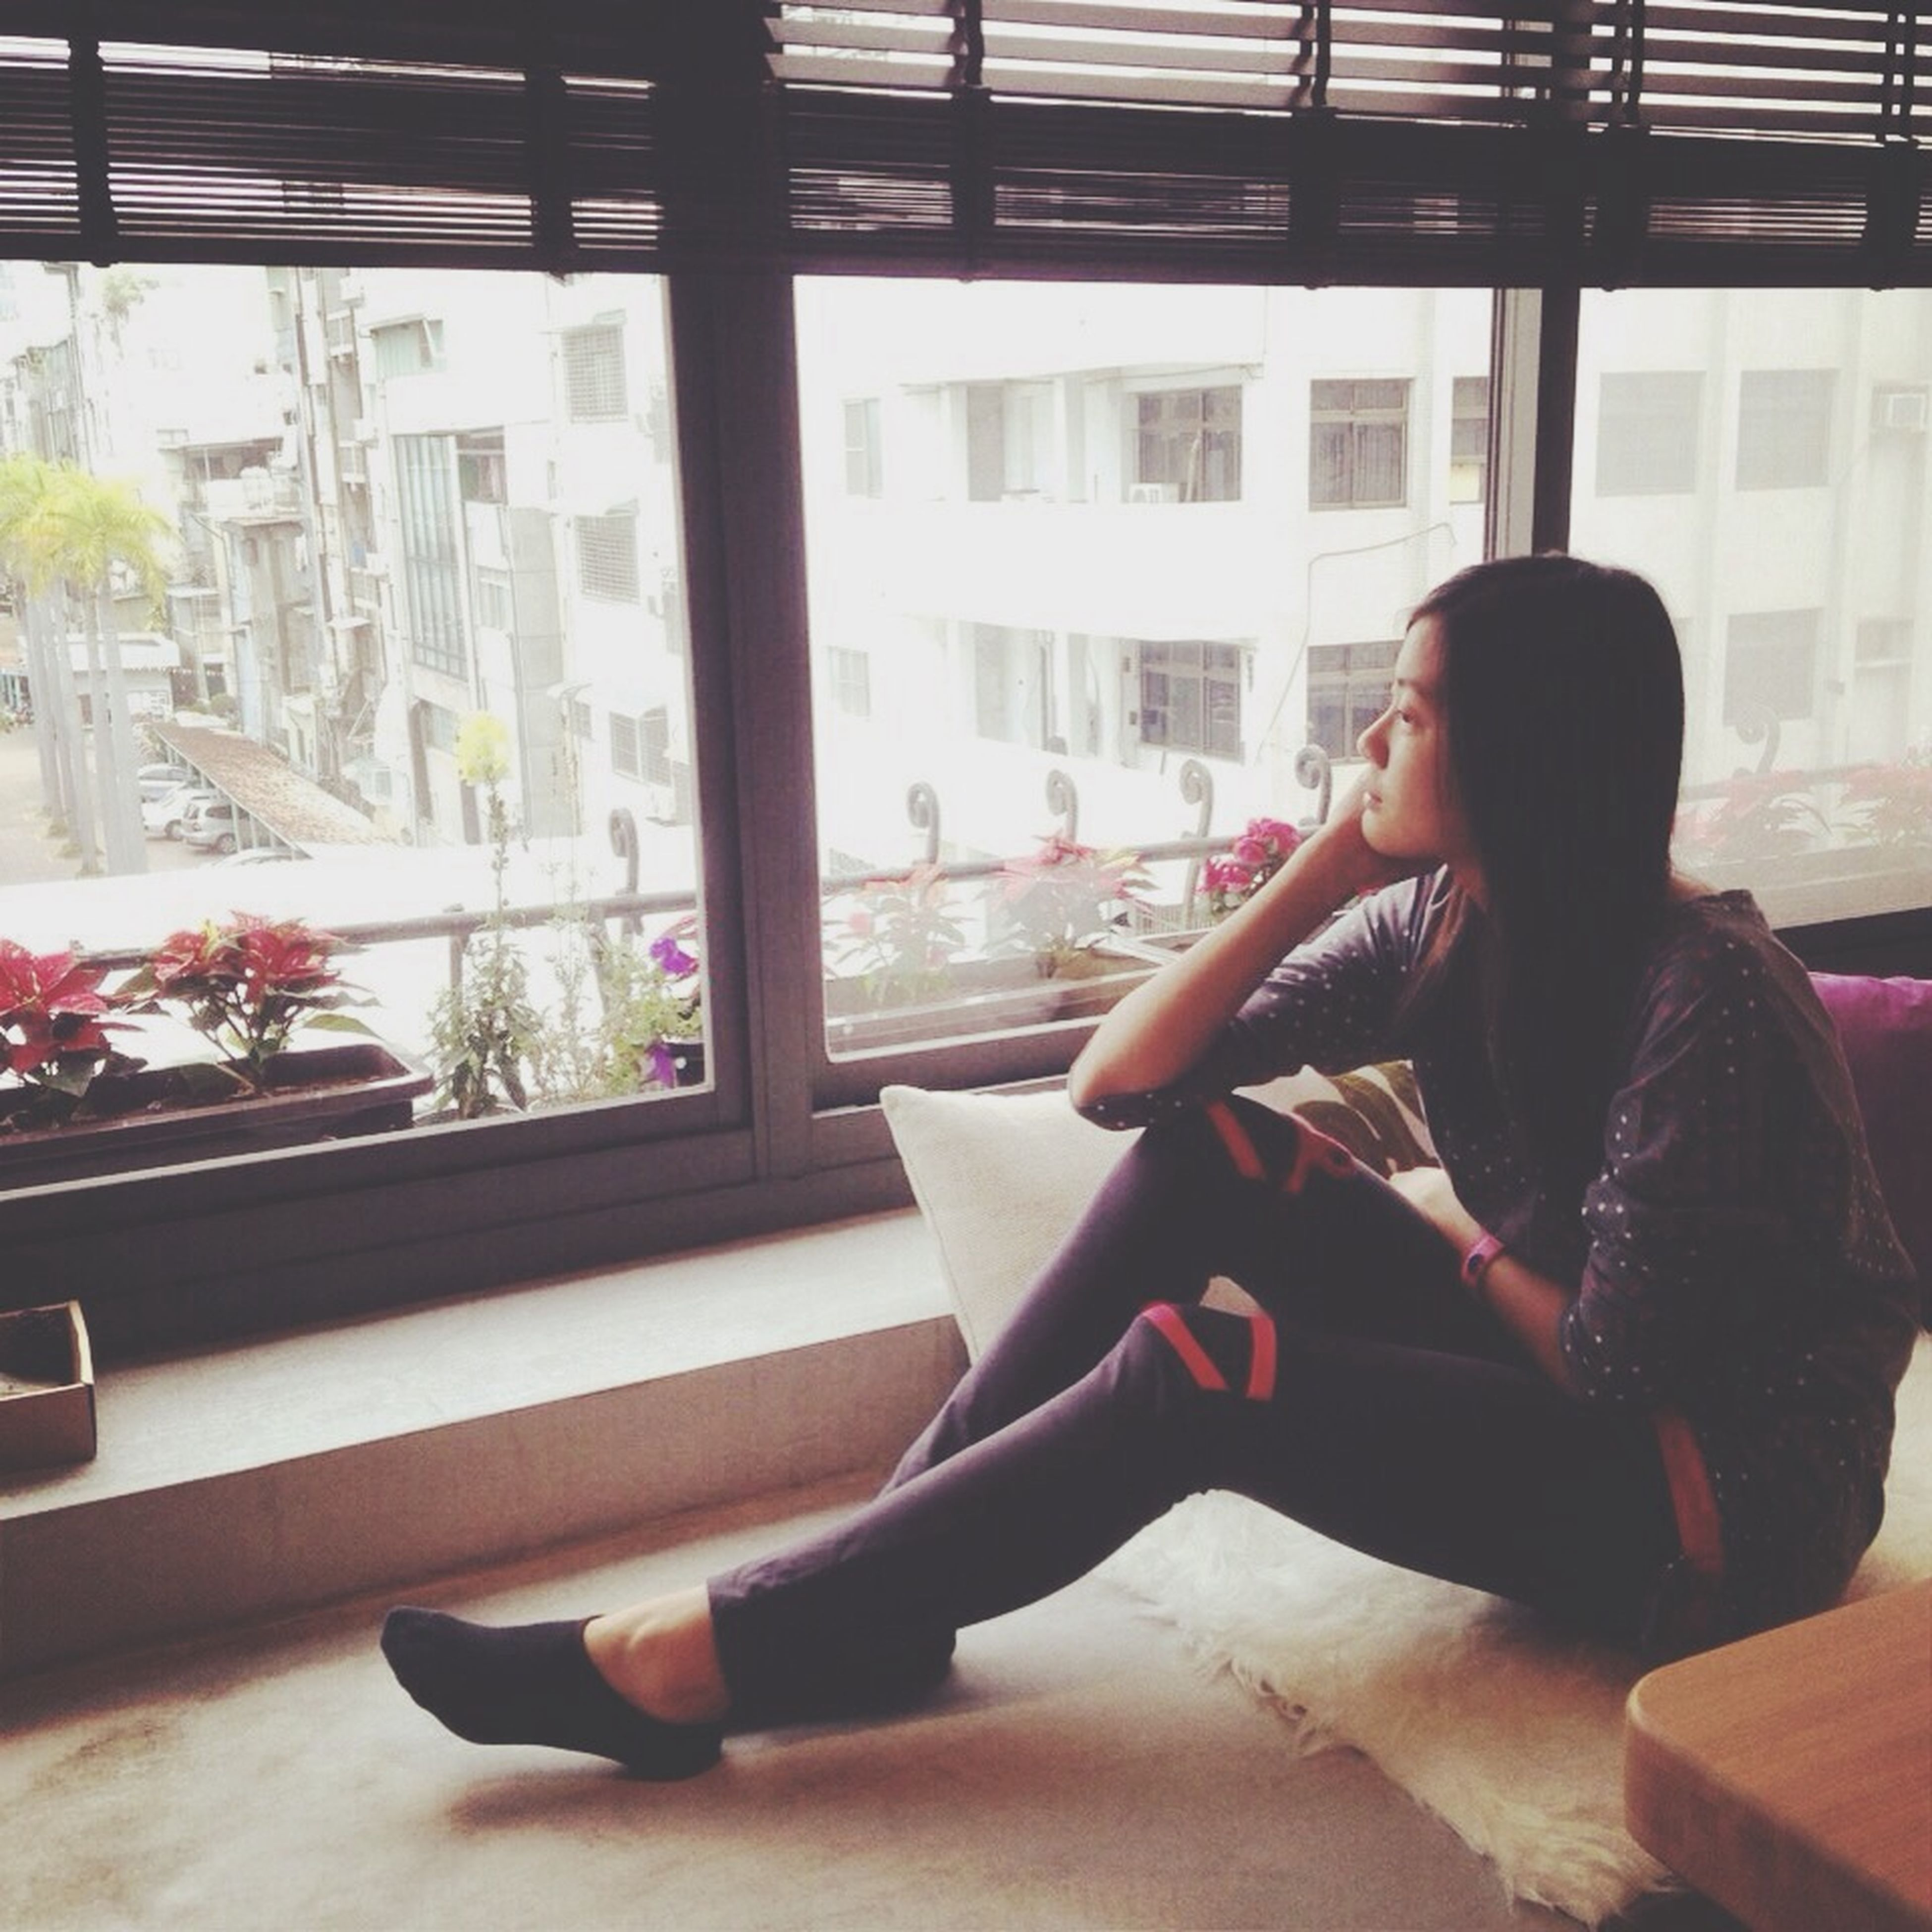 sitting, indoors, lifestyles, window, leisure activity, relaxation, young adult, person, glass - material, young women, chair, transparent, looking through window, side view, architecture, transportation, casual clothing, built structure